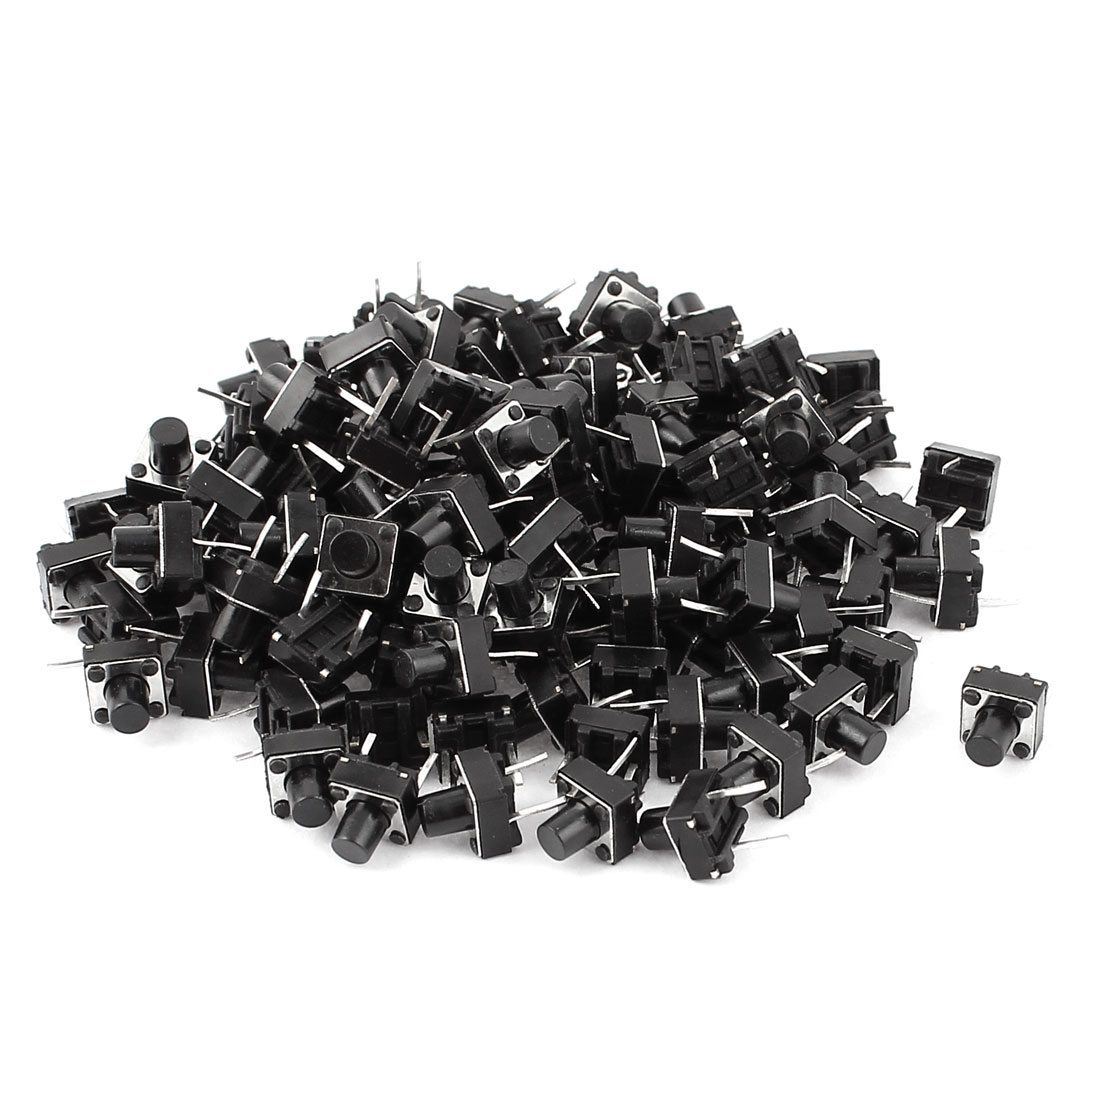 120 Pcs 6x6x7mm DIP Through-Hole Momentary Push Button Tact Tactile Switch